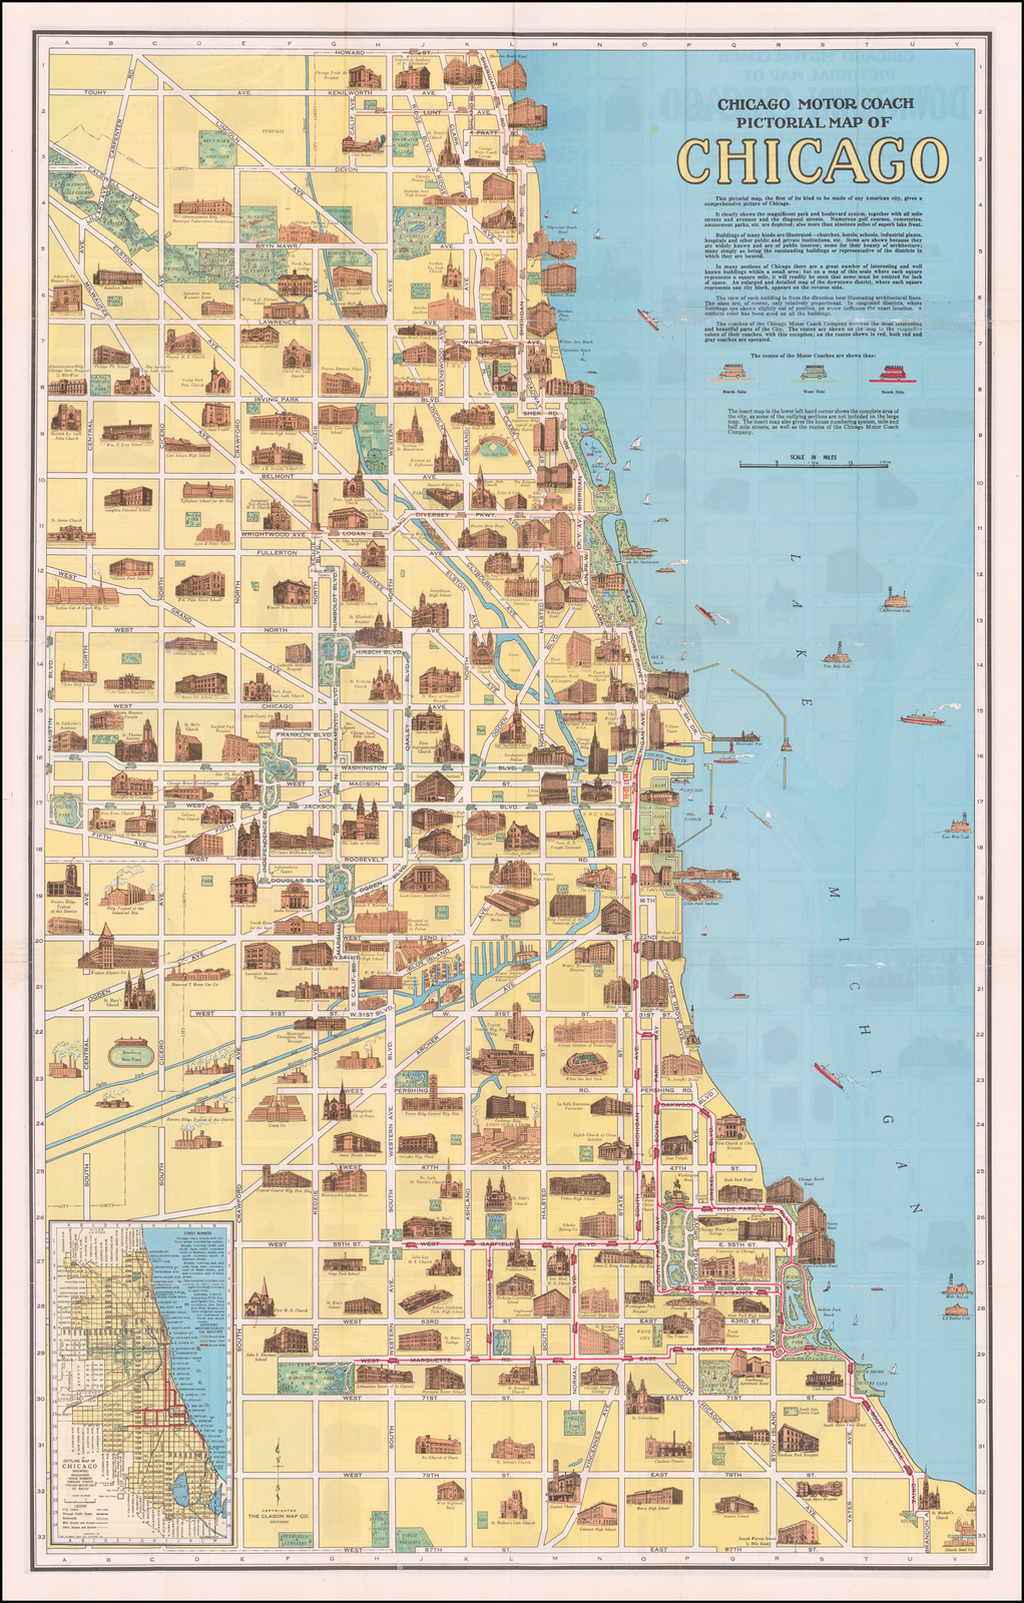 Chicago Motor Coach Pictorial Map of Downtown Chicago By The Clason Map Company